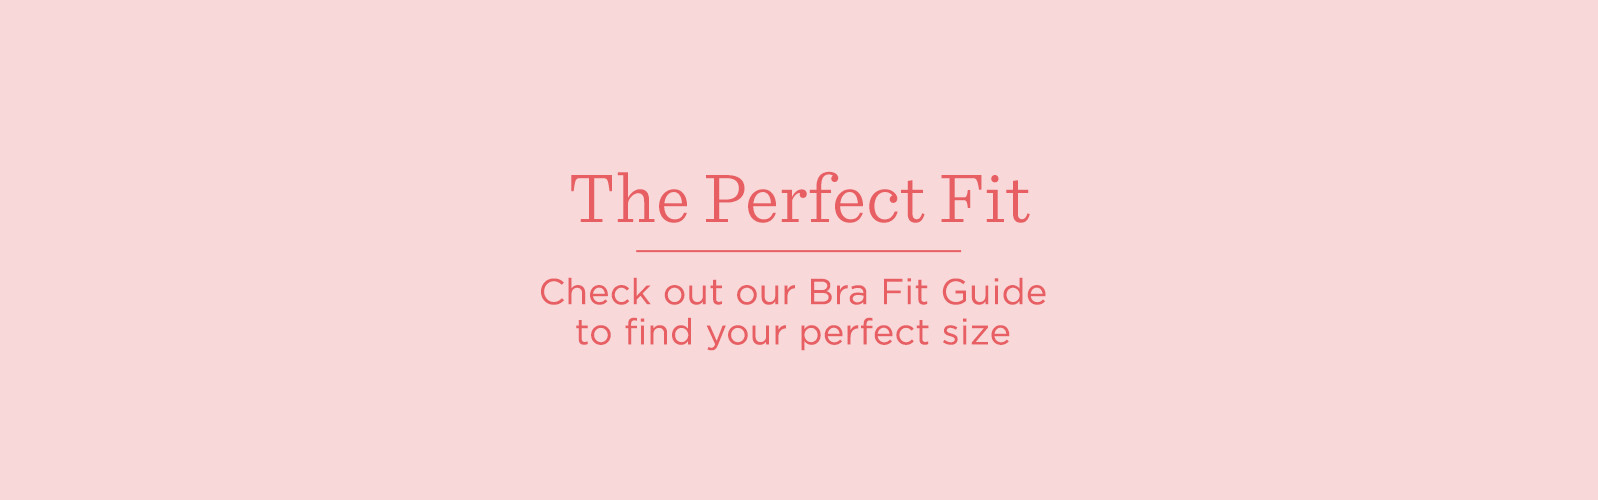 ce8aea7bbe The Perfect Fit. Check out our Bra Fit Guide to find your perfect size ...